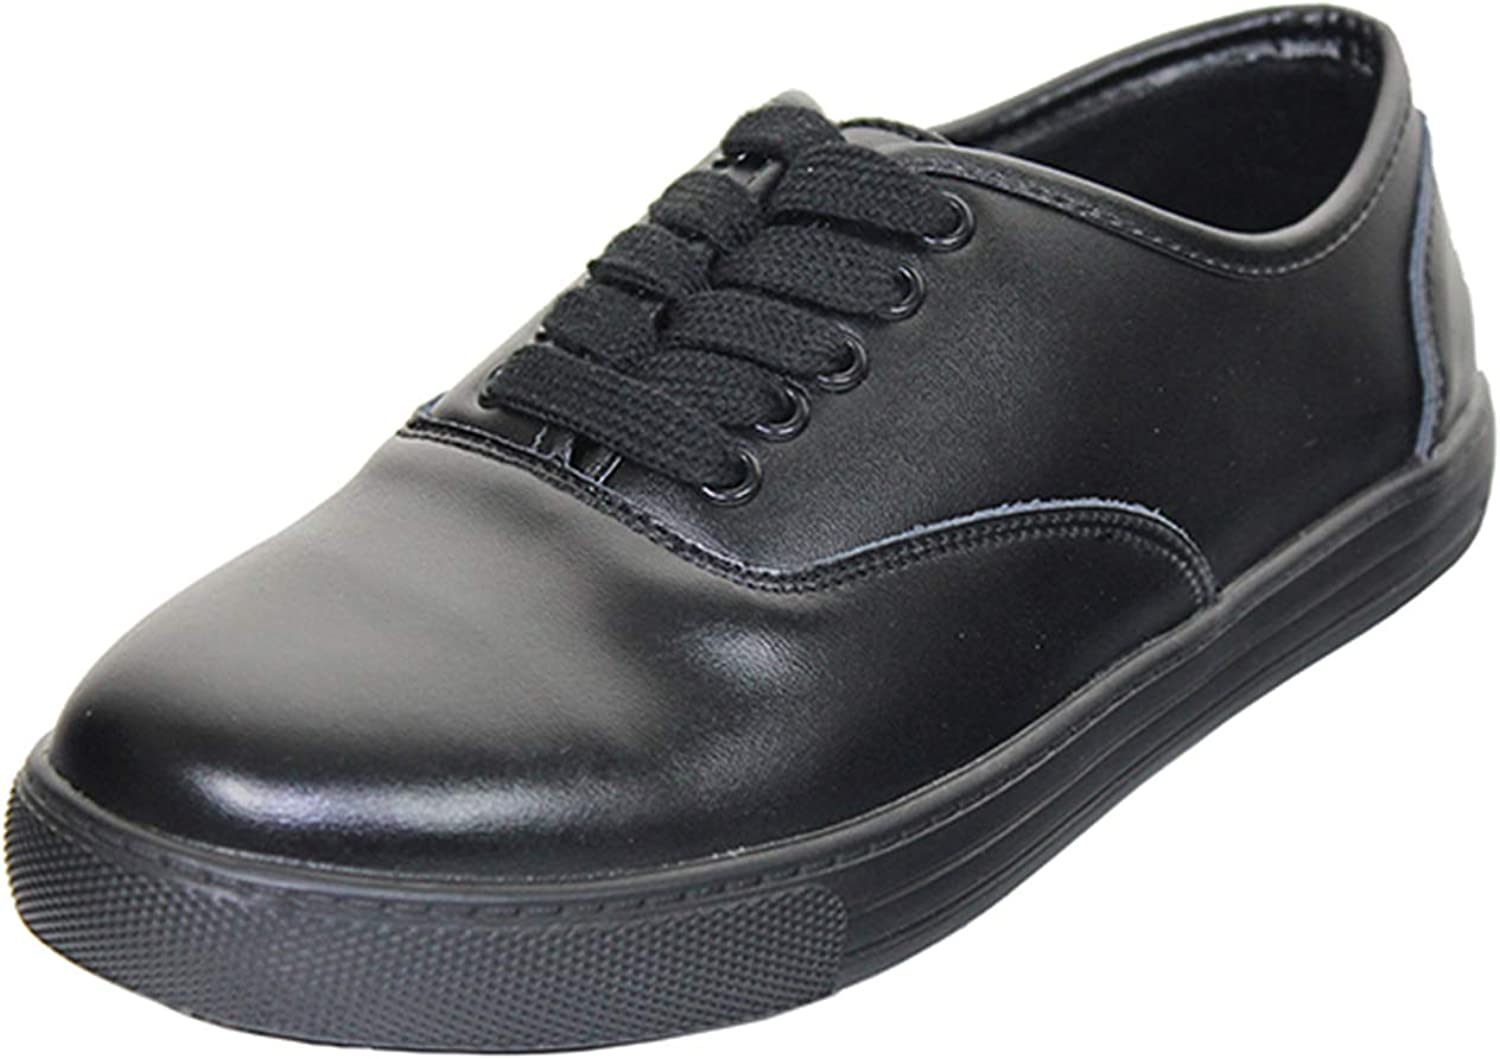 Tanleewa Slip Resistant Work Shoes for Women Leather Shoes Lightweight Casual Shoes Safety Shoes